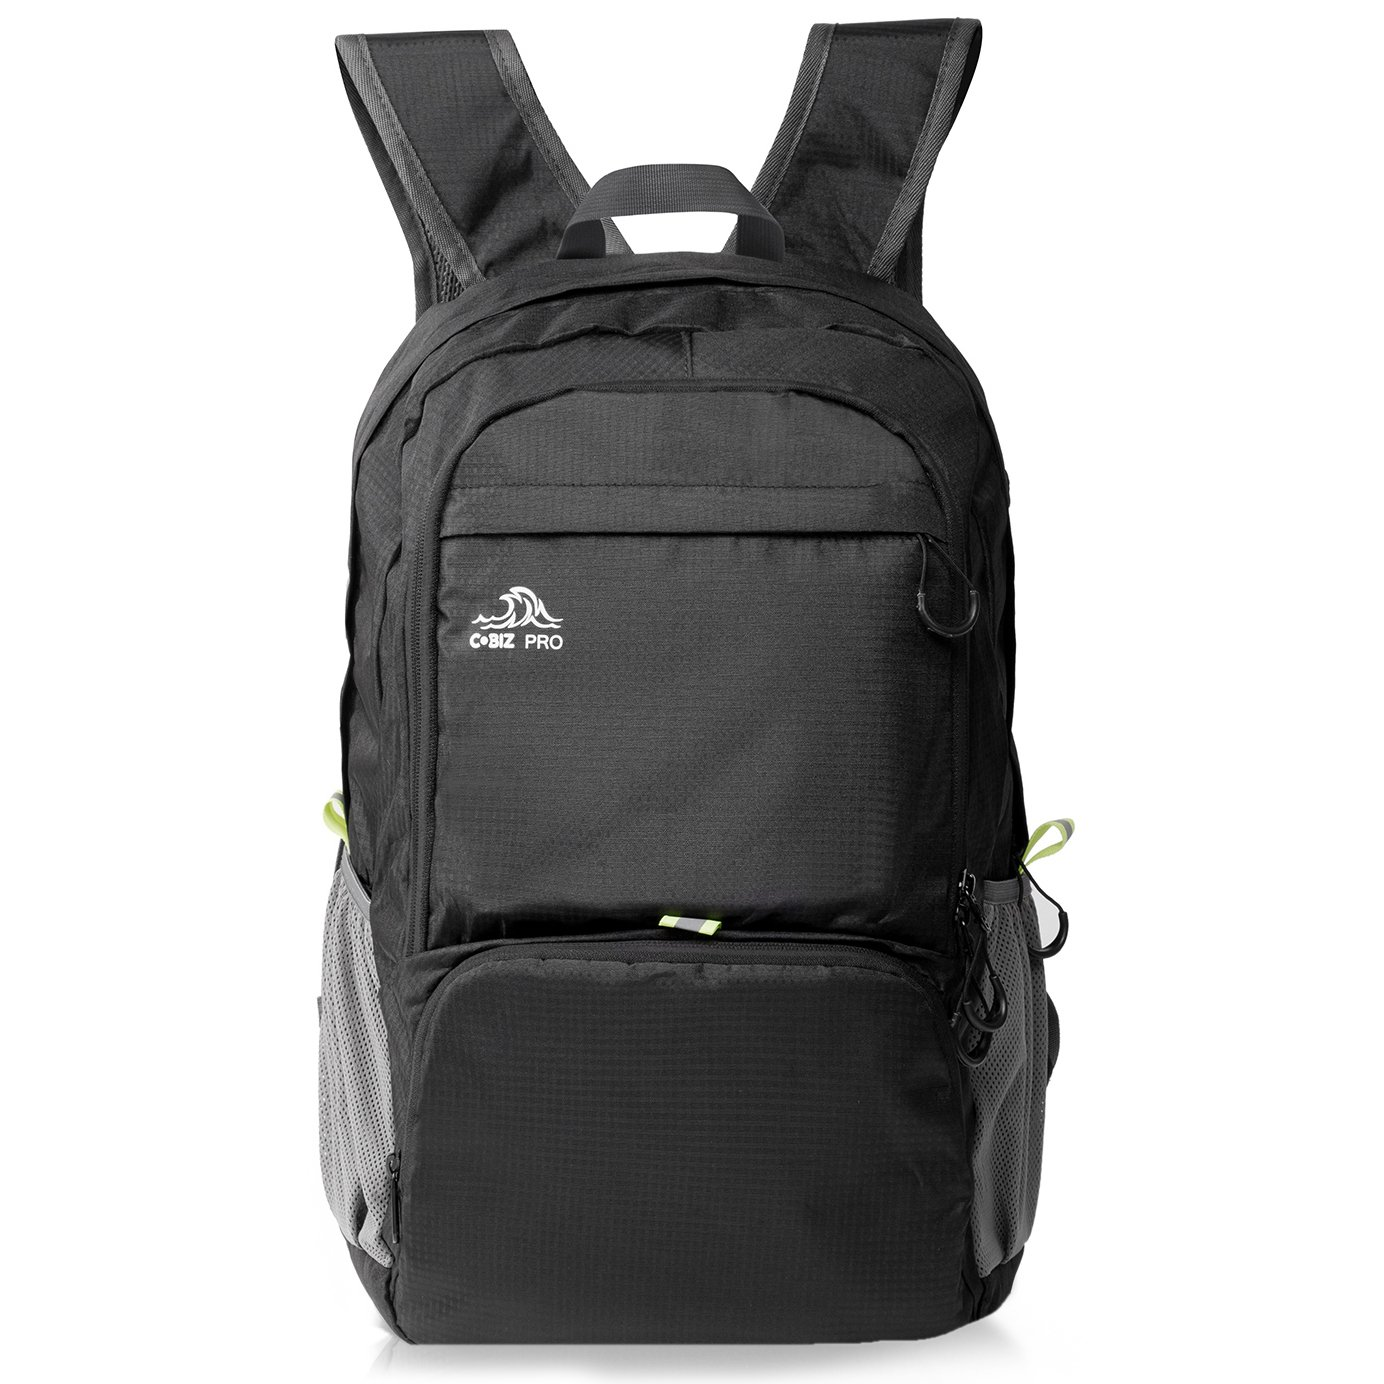 992fa3ae818 Cobiz Lightweight Packable Camping Hiking Backpack Daypack,30 Litre Small  Pack Handy Foldable Travel Outdoor Sports Rucksack Unisex Nylon School Bags